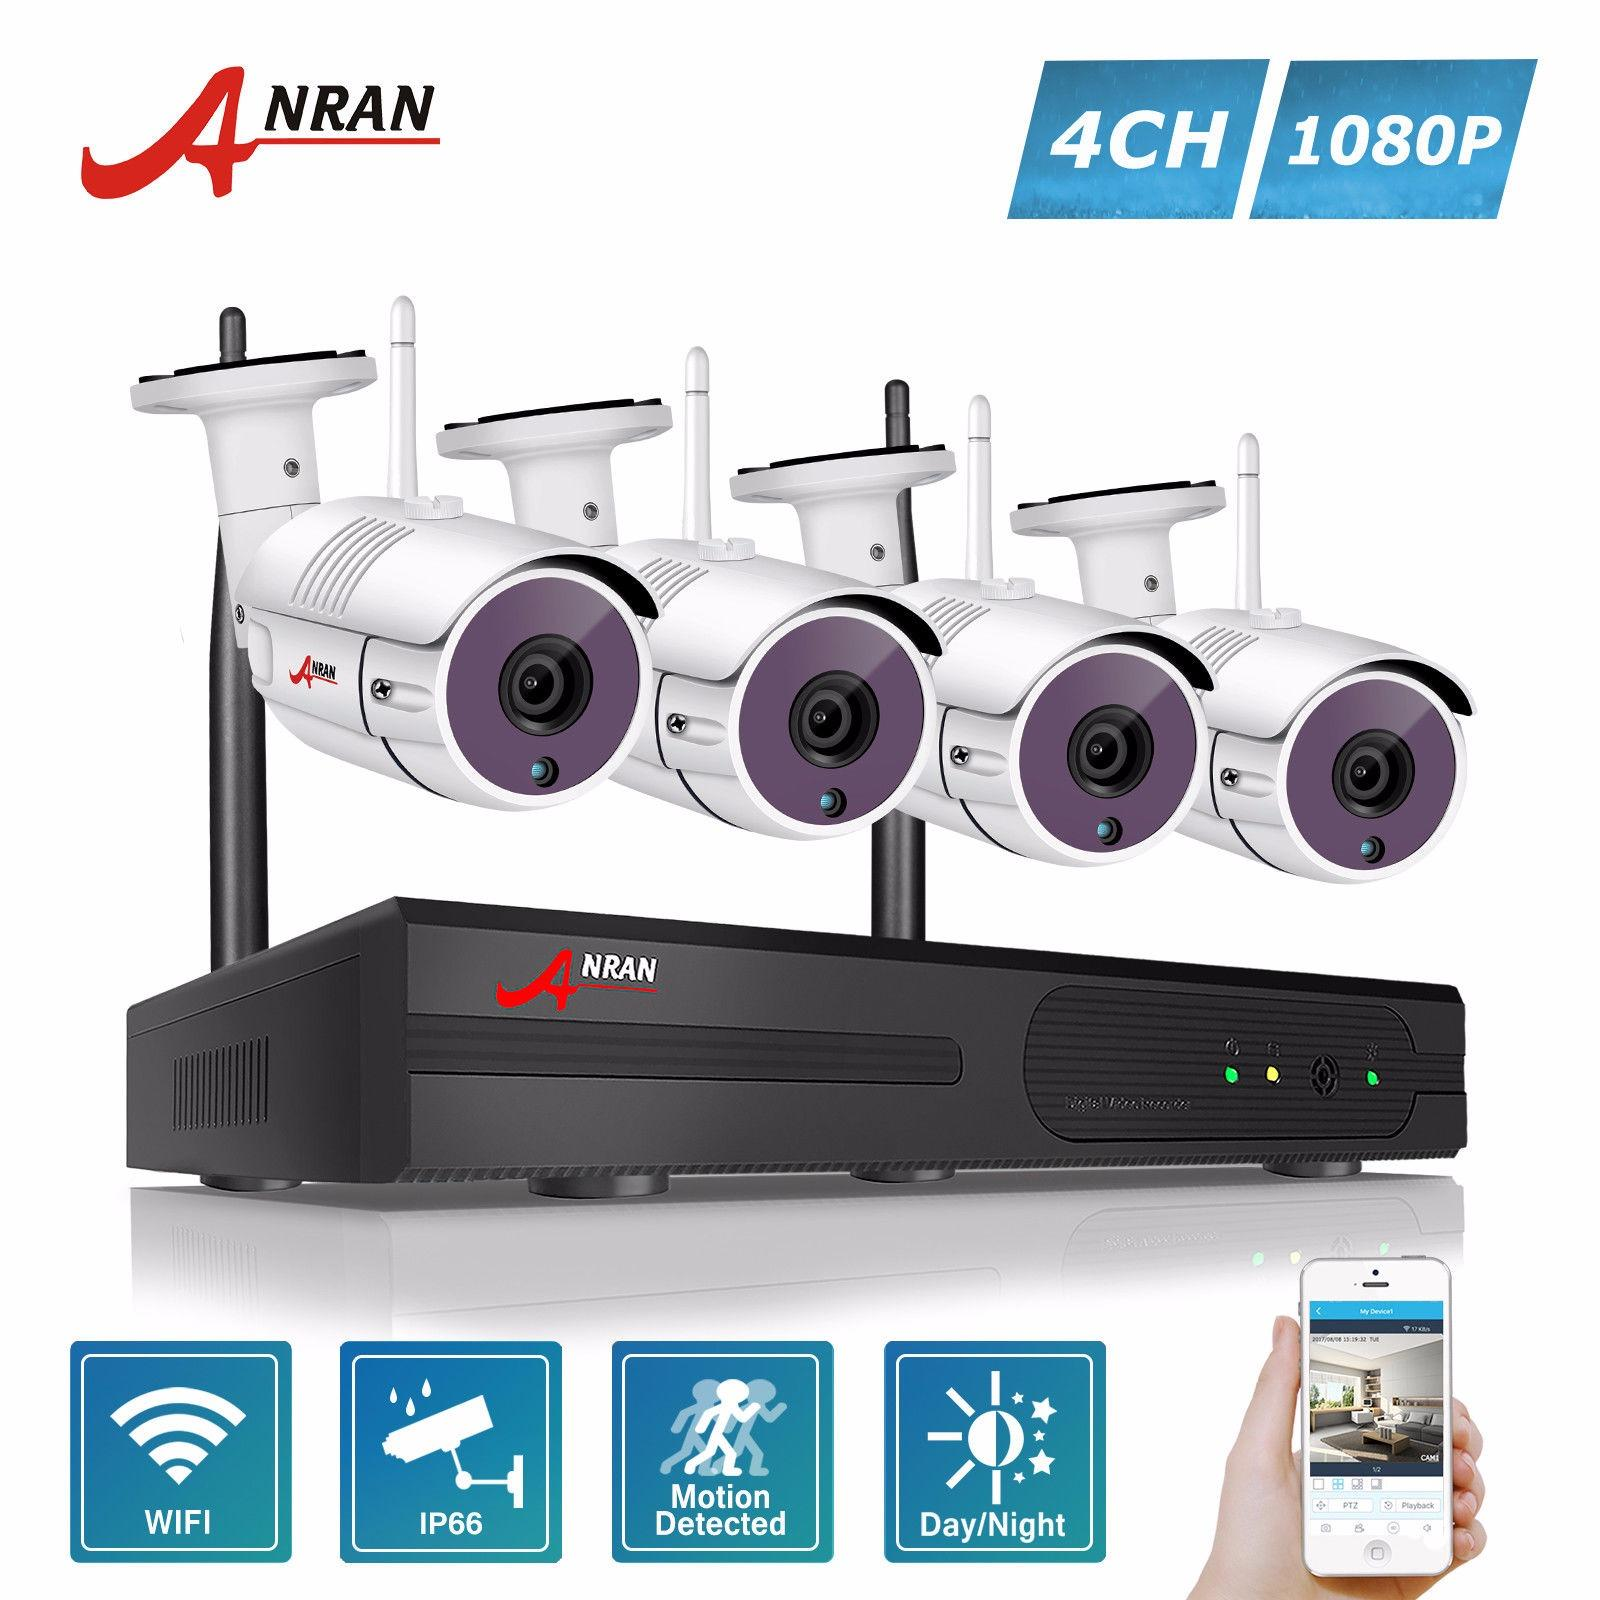 Sale Anran 4Ch Wireless Nvr Security Cctv System P2P 1080P Hd Outdoor Vandalproof Wfi Ip Camera Anran Branded